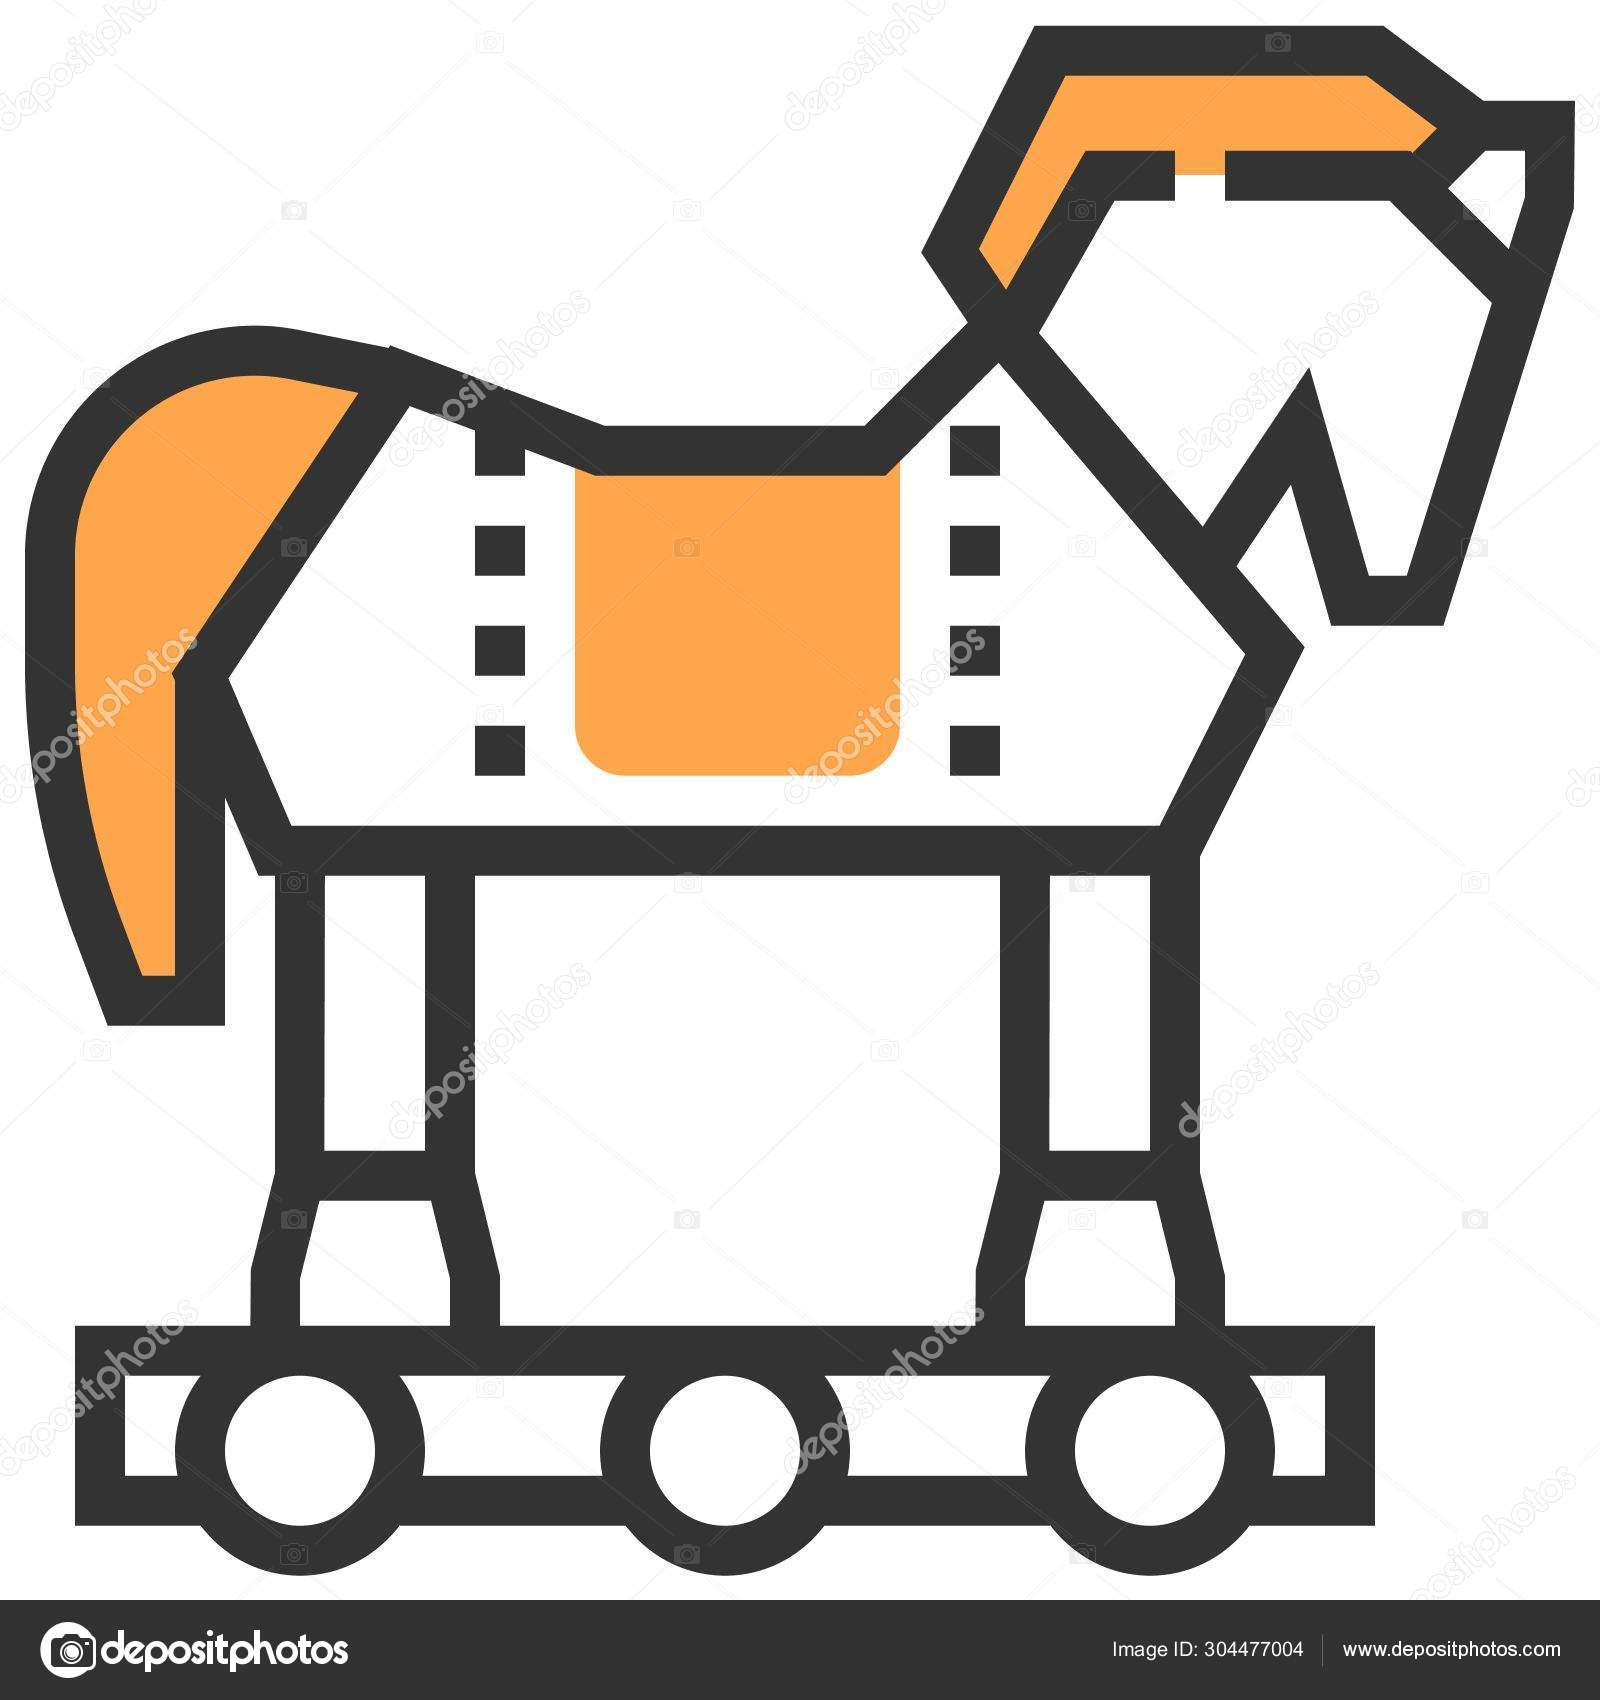 Trojan Horse Web Icon Stock Vector C Iconscout 304477004